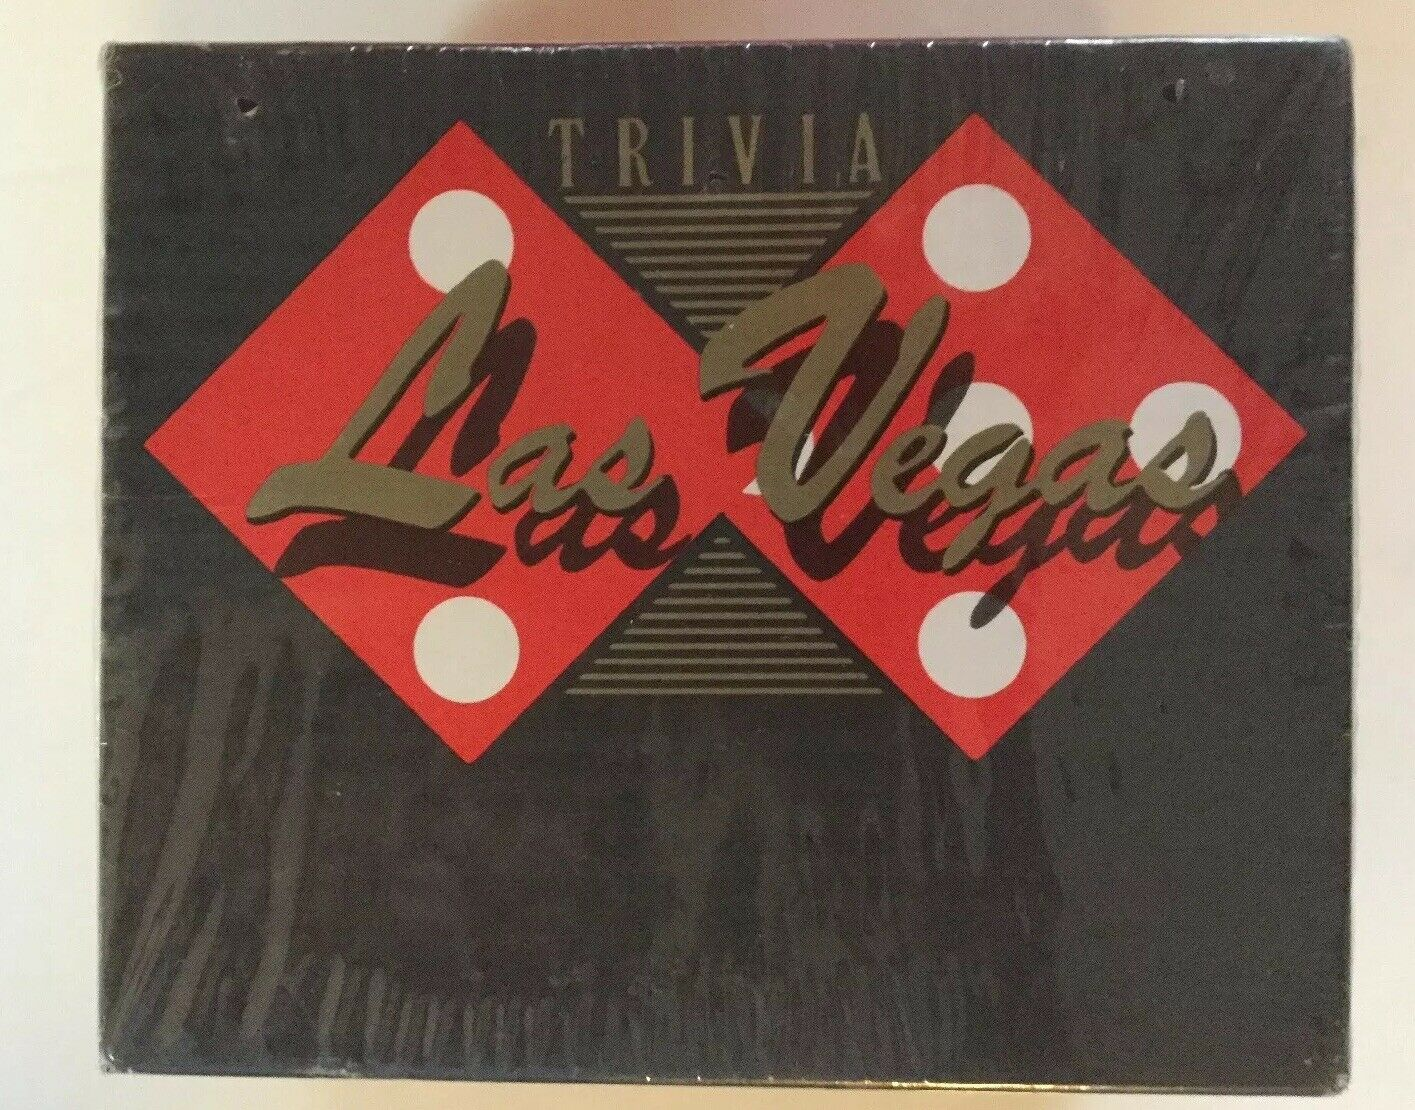 LAS VEGAS VINTAGE TRIVIA DICE FLAMINGO HOTEL MOBSTER TRIVIAL SEALED NEW Free S&H